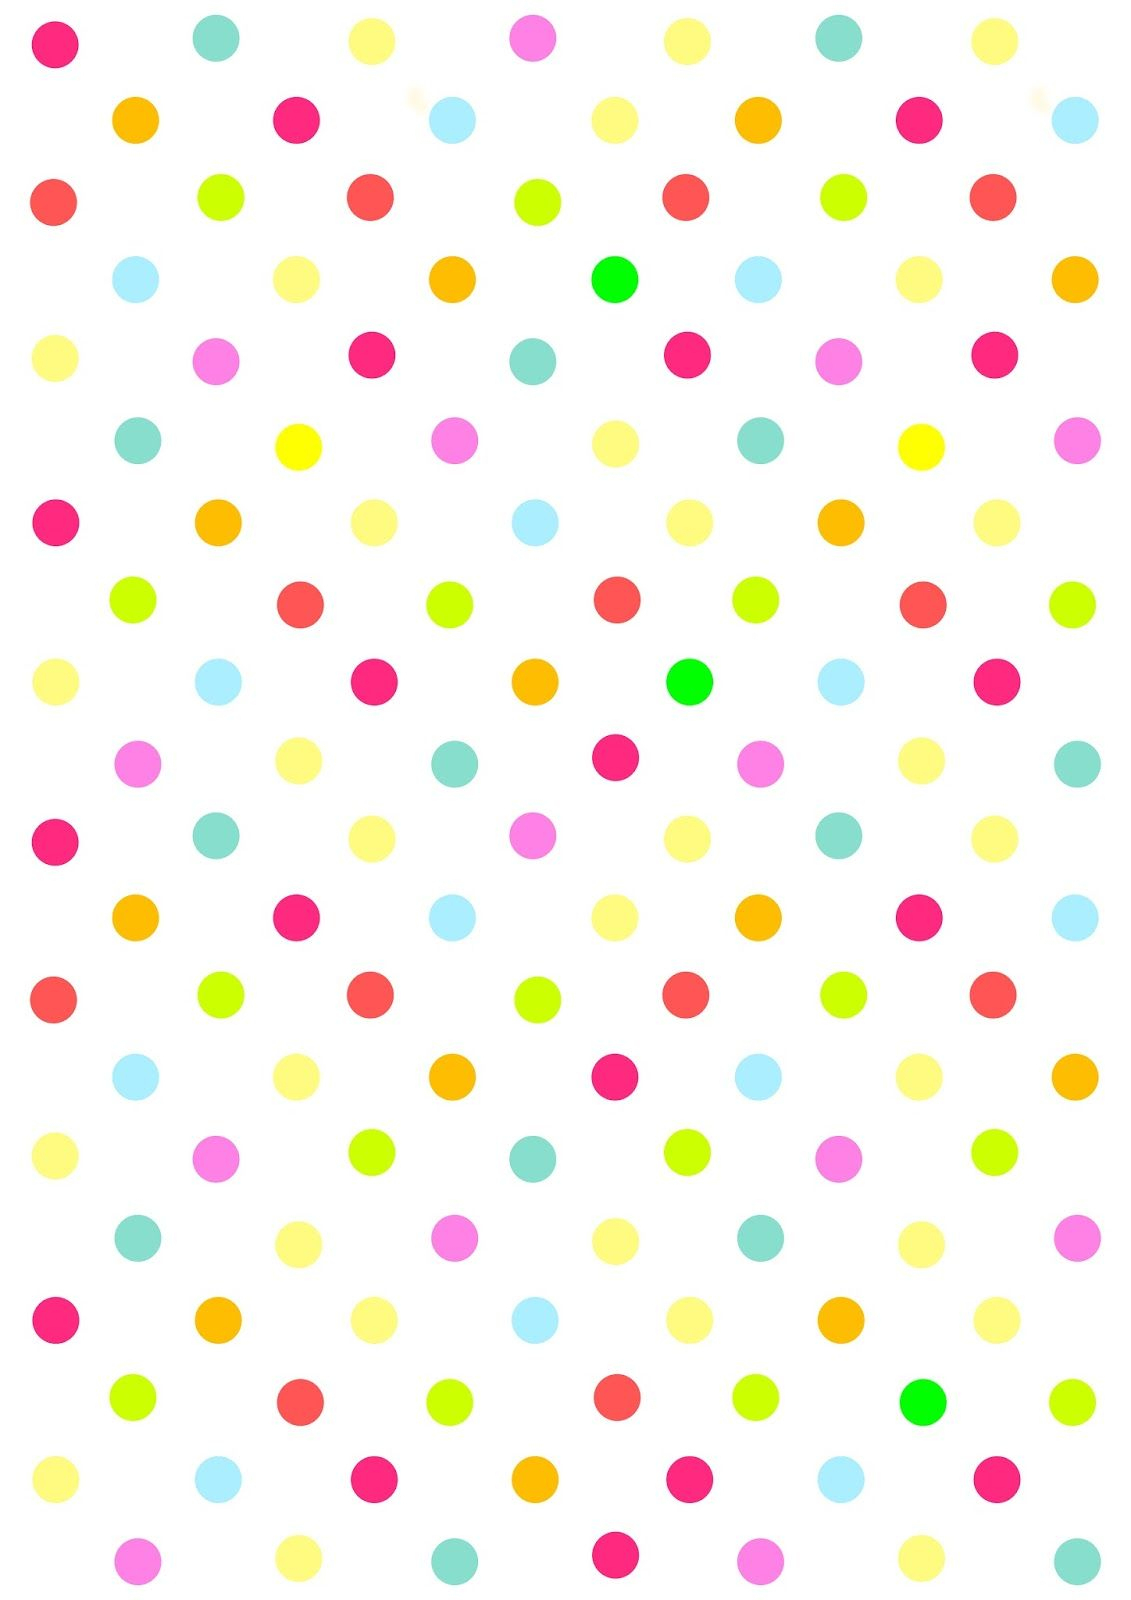 Free Digital Multicolored Polka Dot Scrapbooking Paper - Free Printable Pink Polka Dot Paper